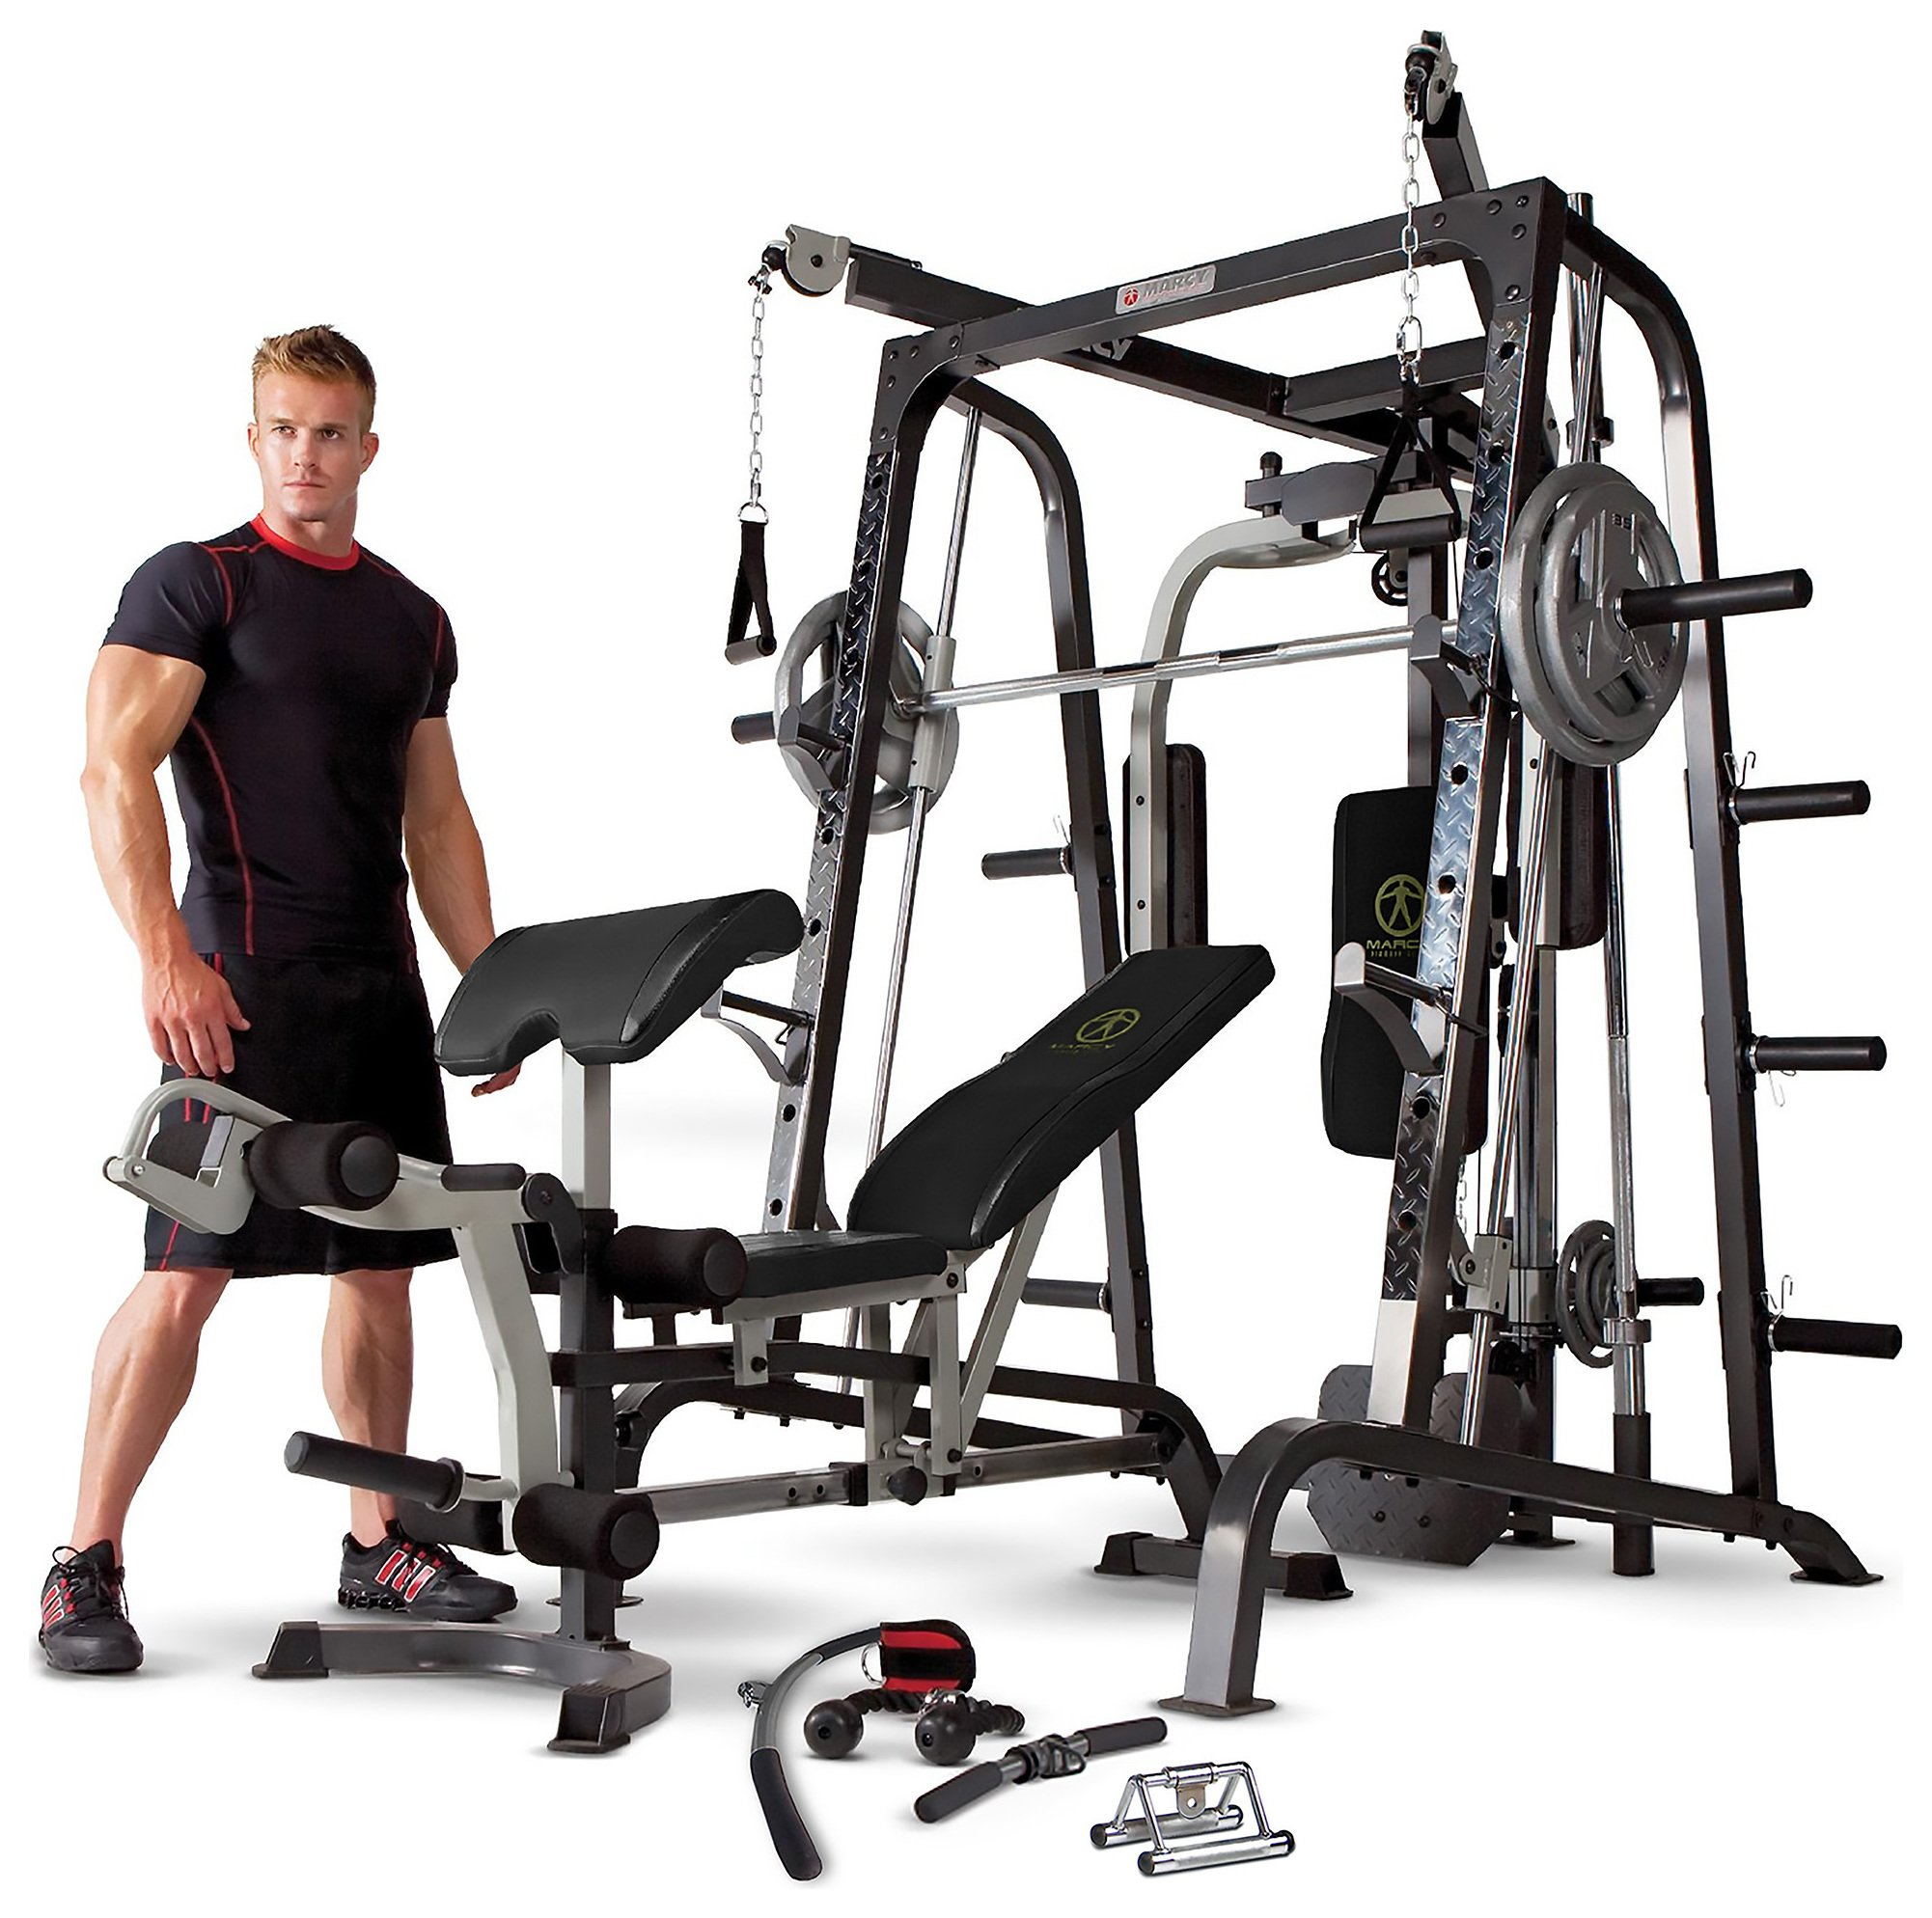 'Marcy Md9010g Deluxe Smith Machine Home Multi Gym.